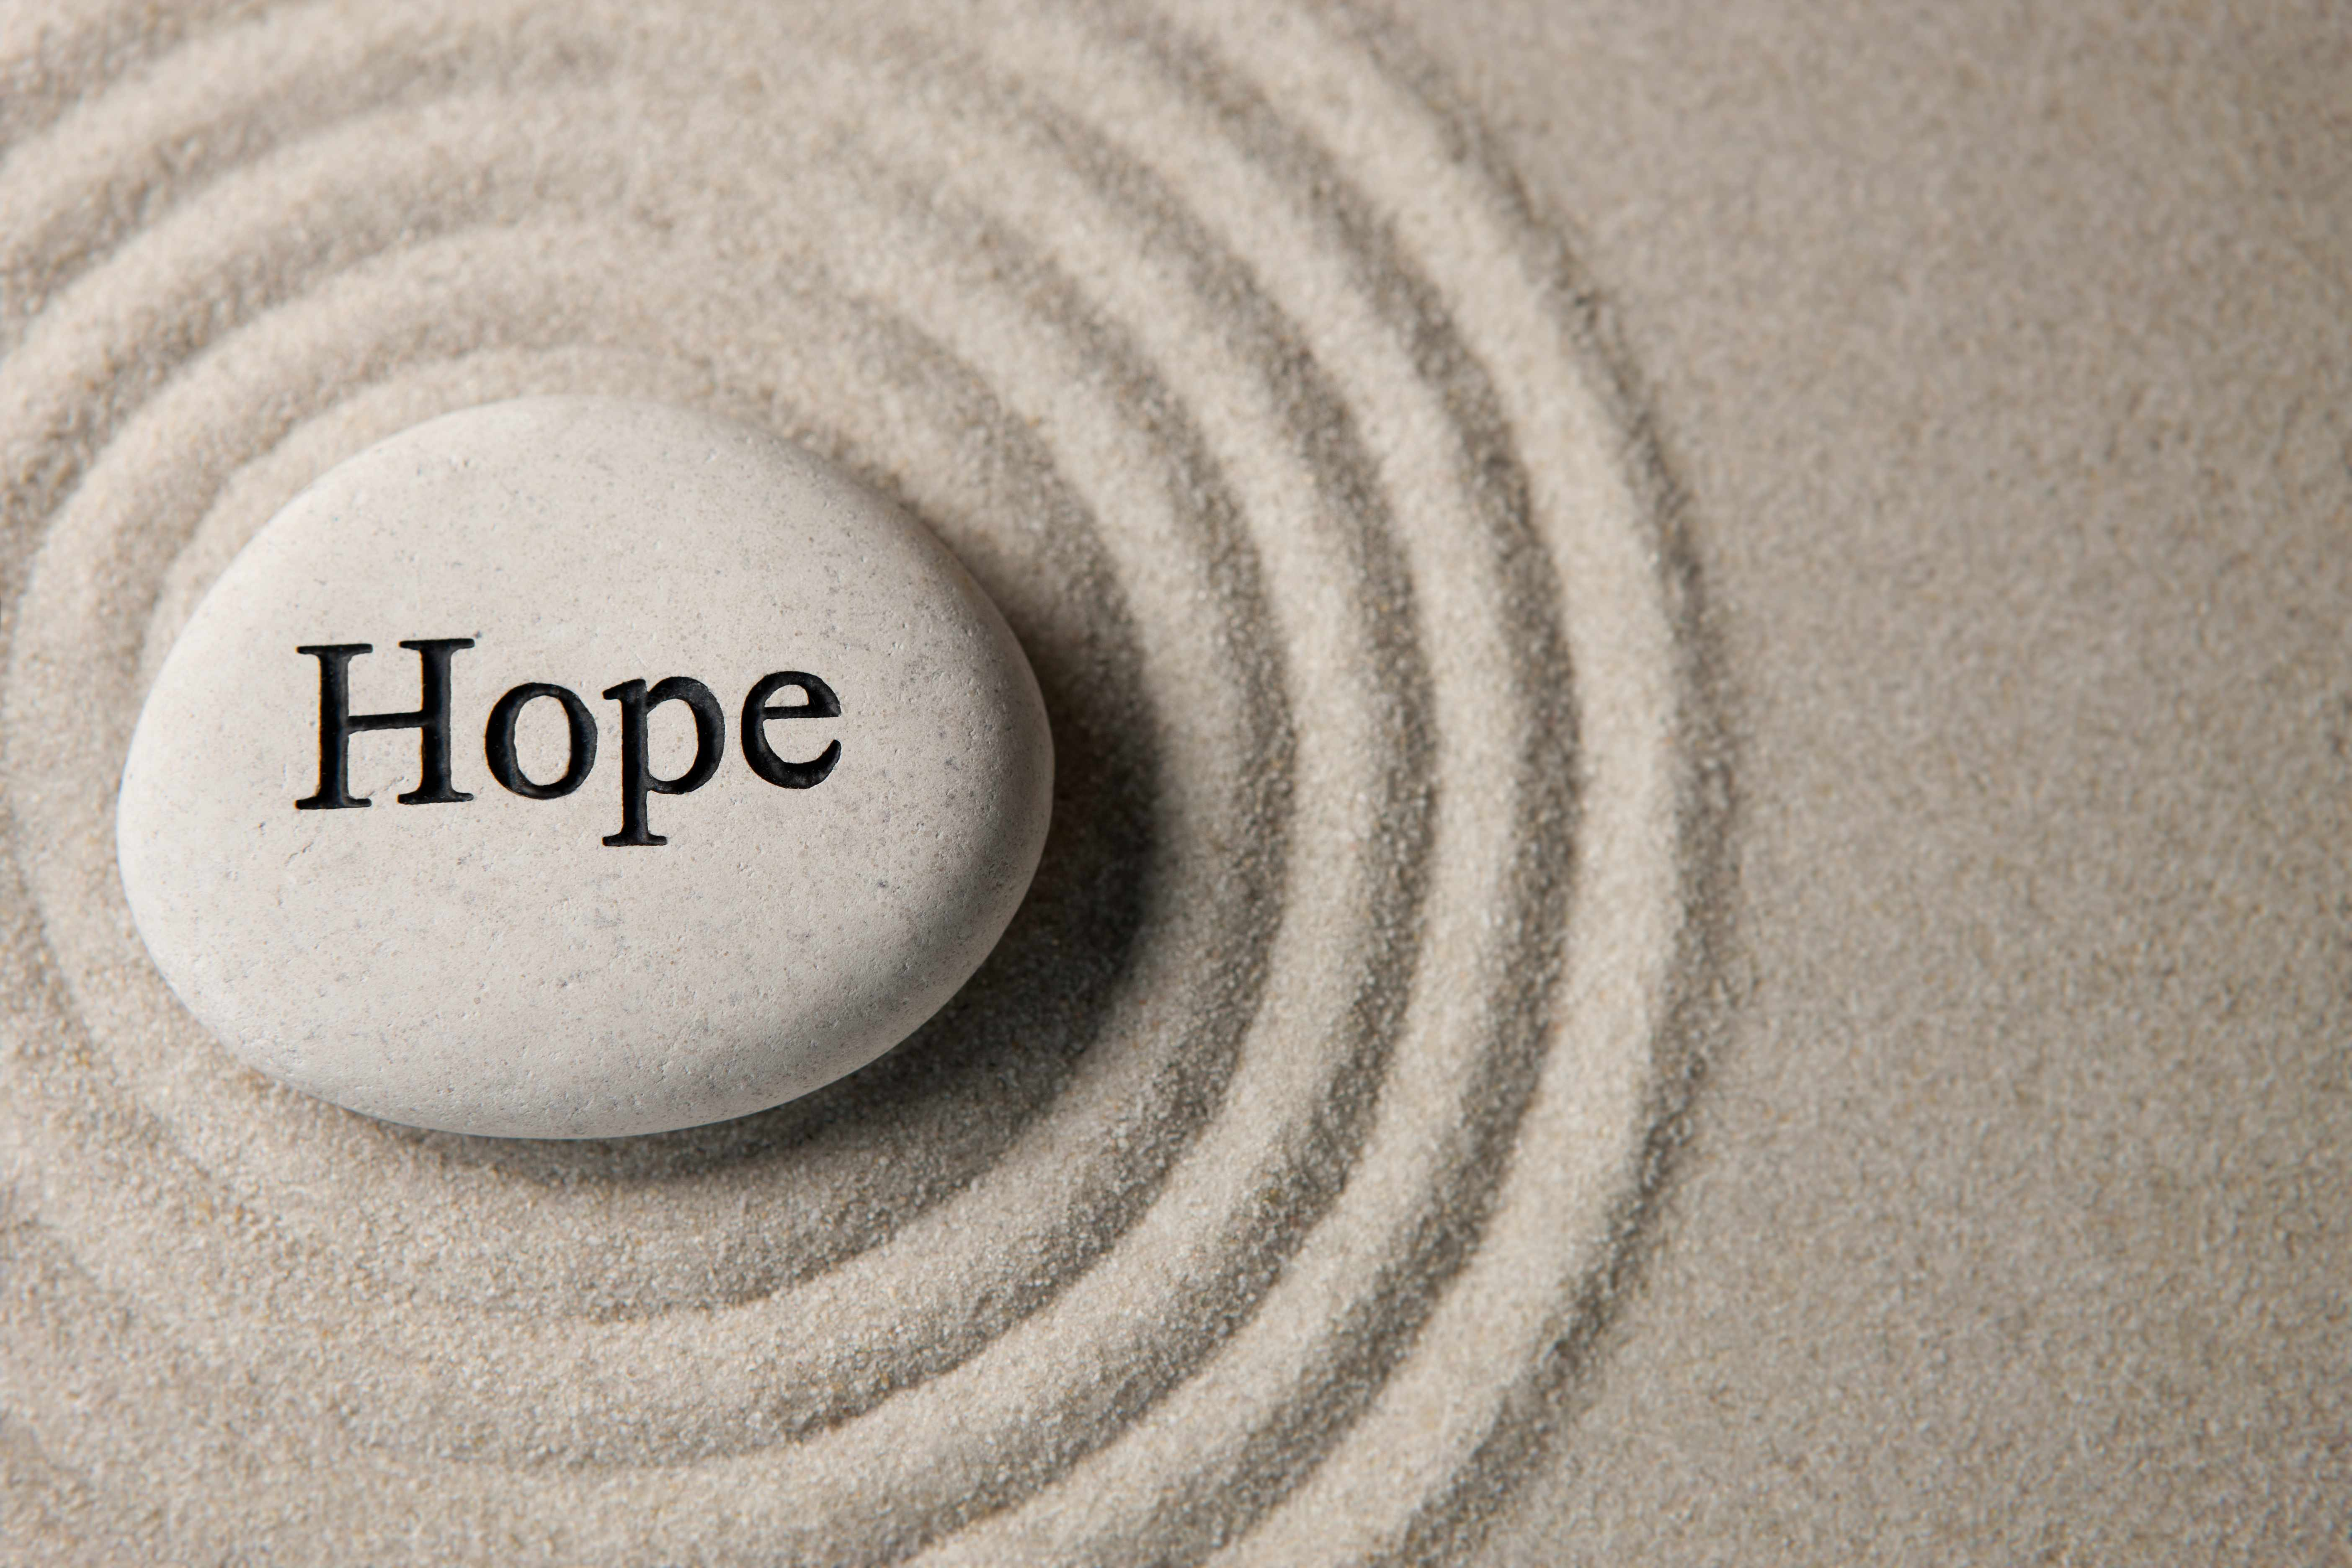 a stone in the sand with the word hope written on it